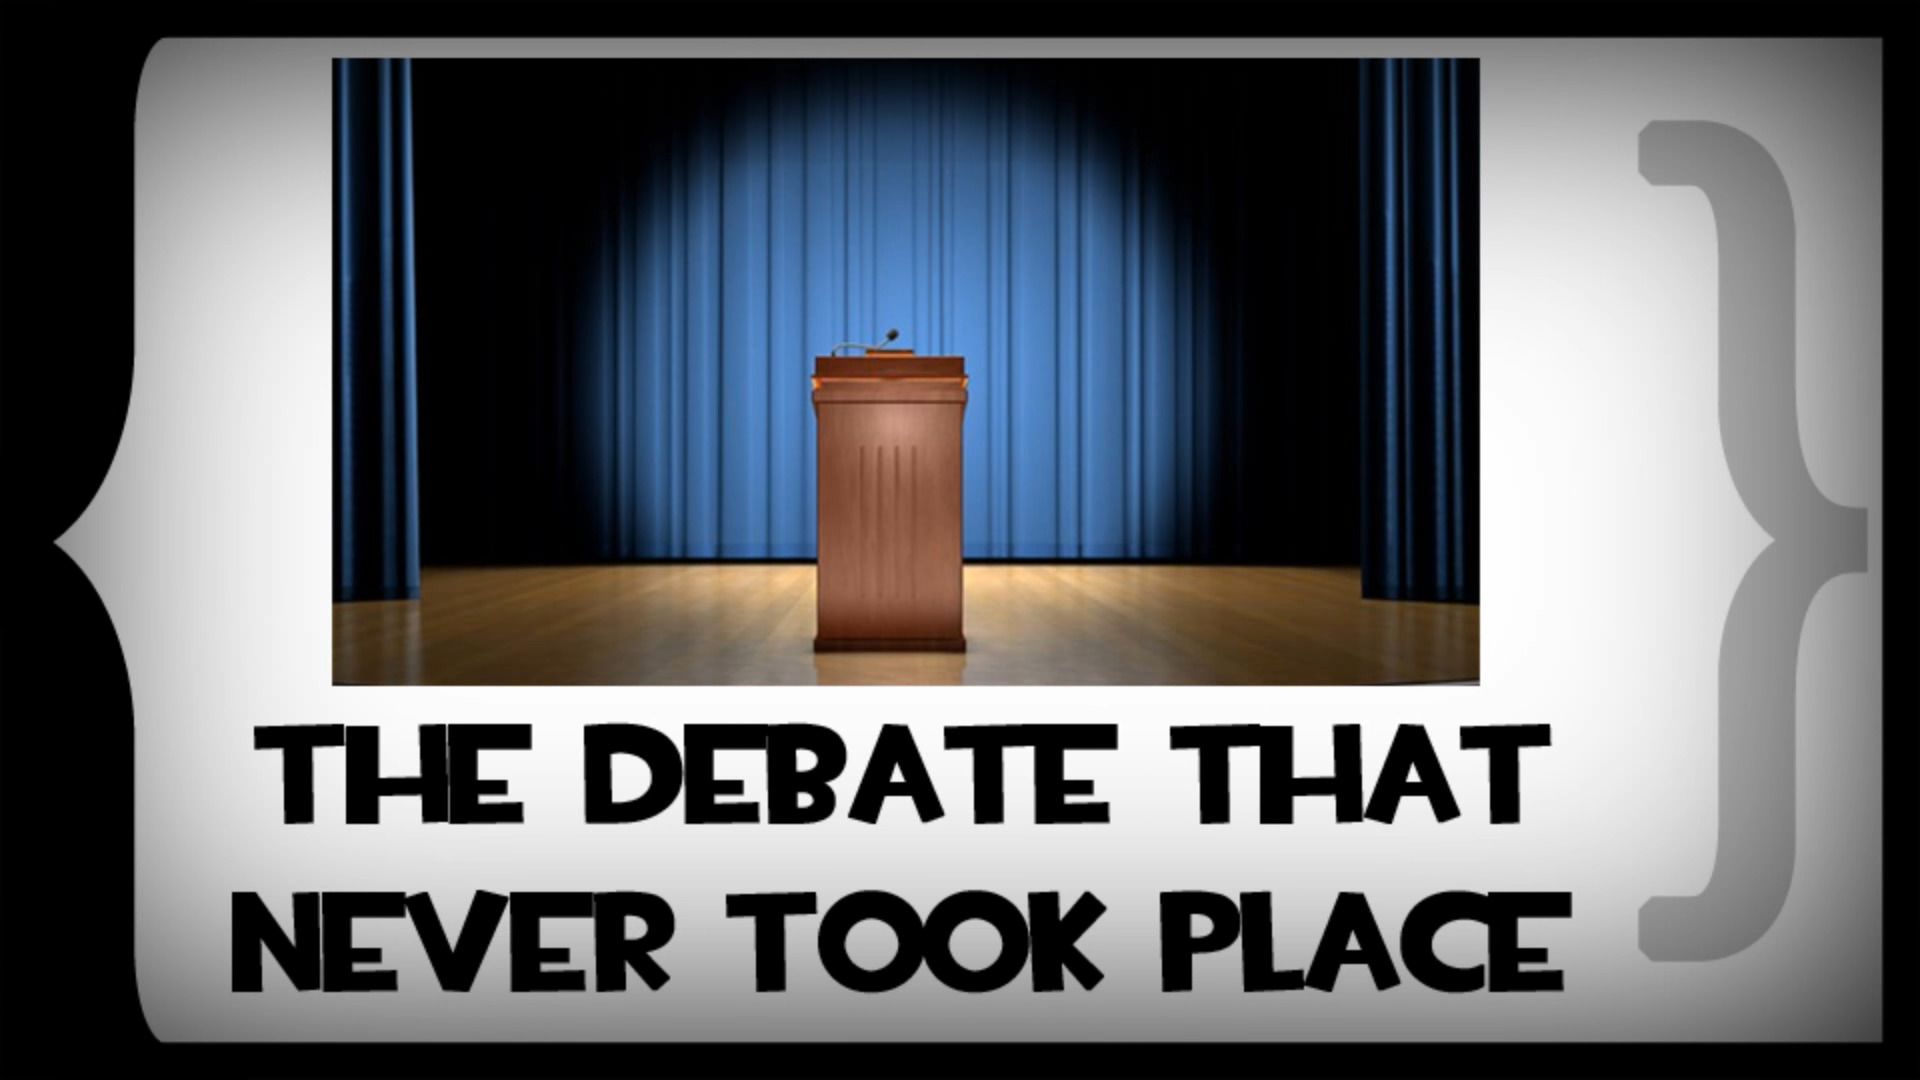 The title card from Errant Signal's The Debate That Never Took Place